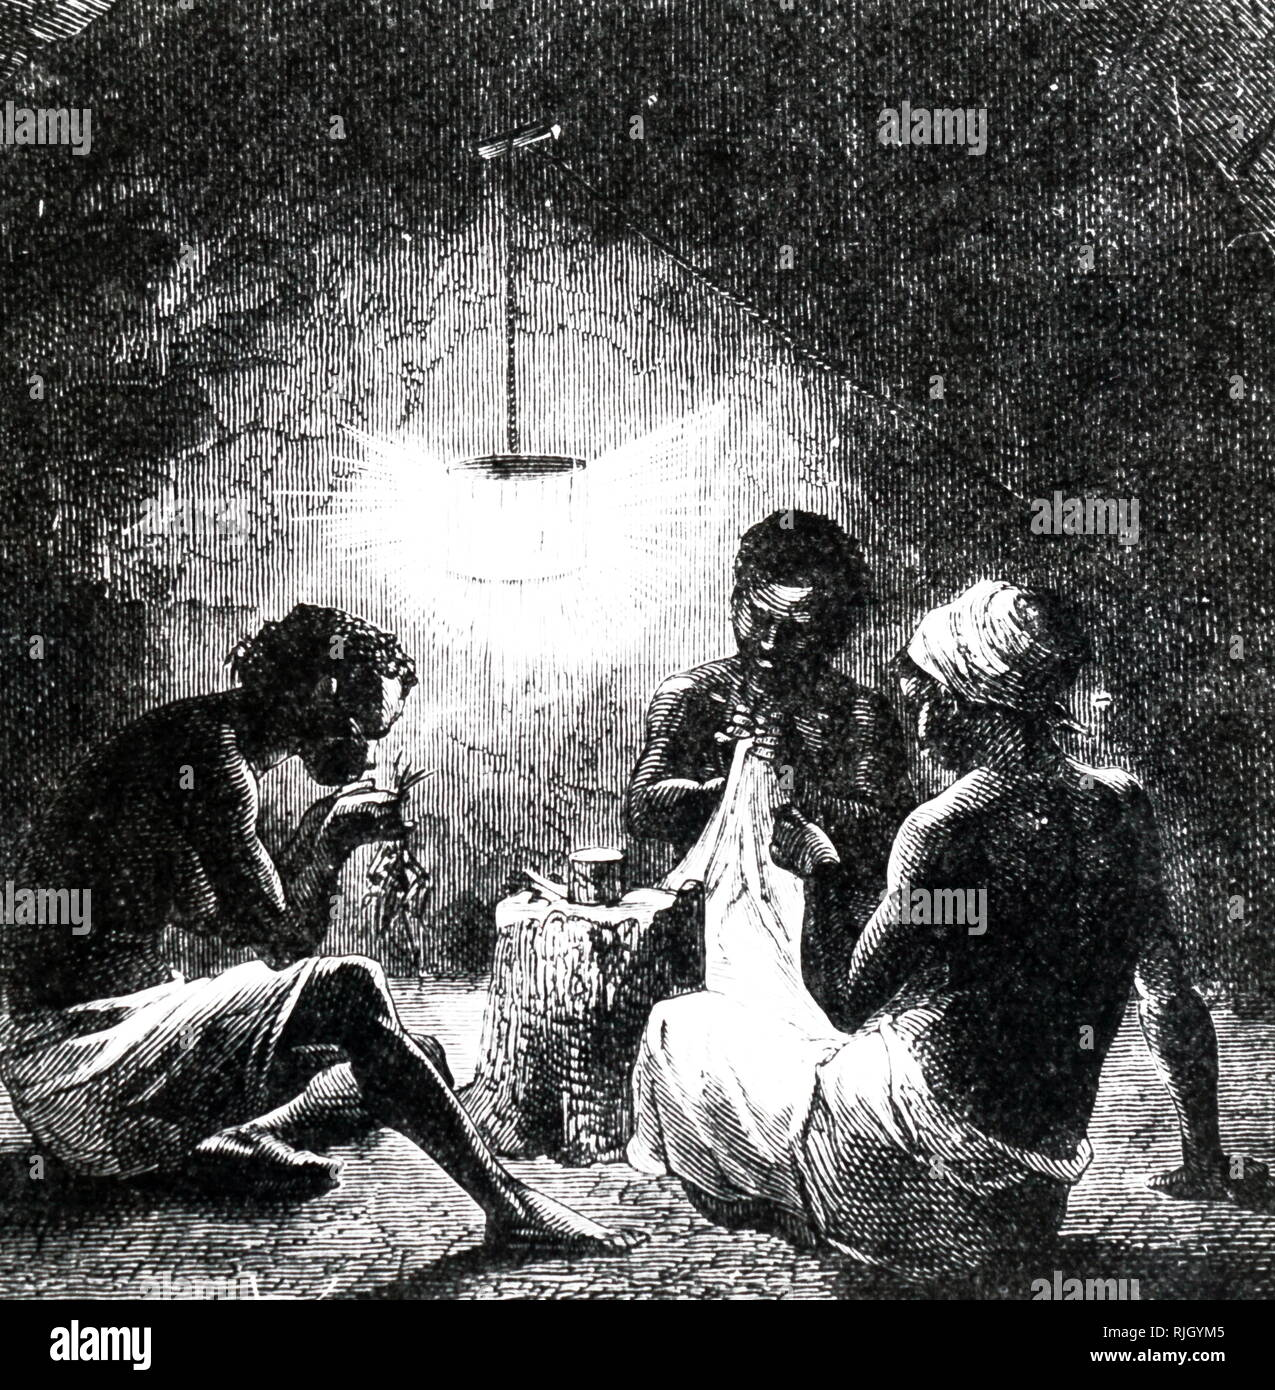 An engraving depicting West Indians using a cage of luminous beetles to provide light. Dated 19th century - Stock Image